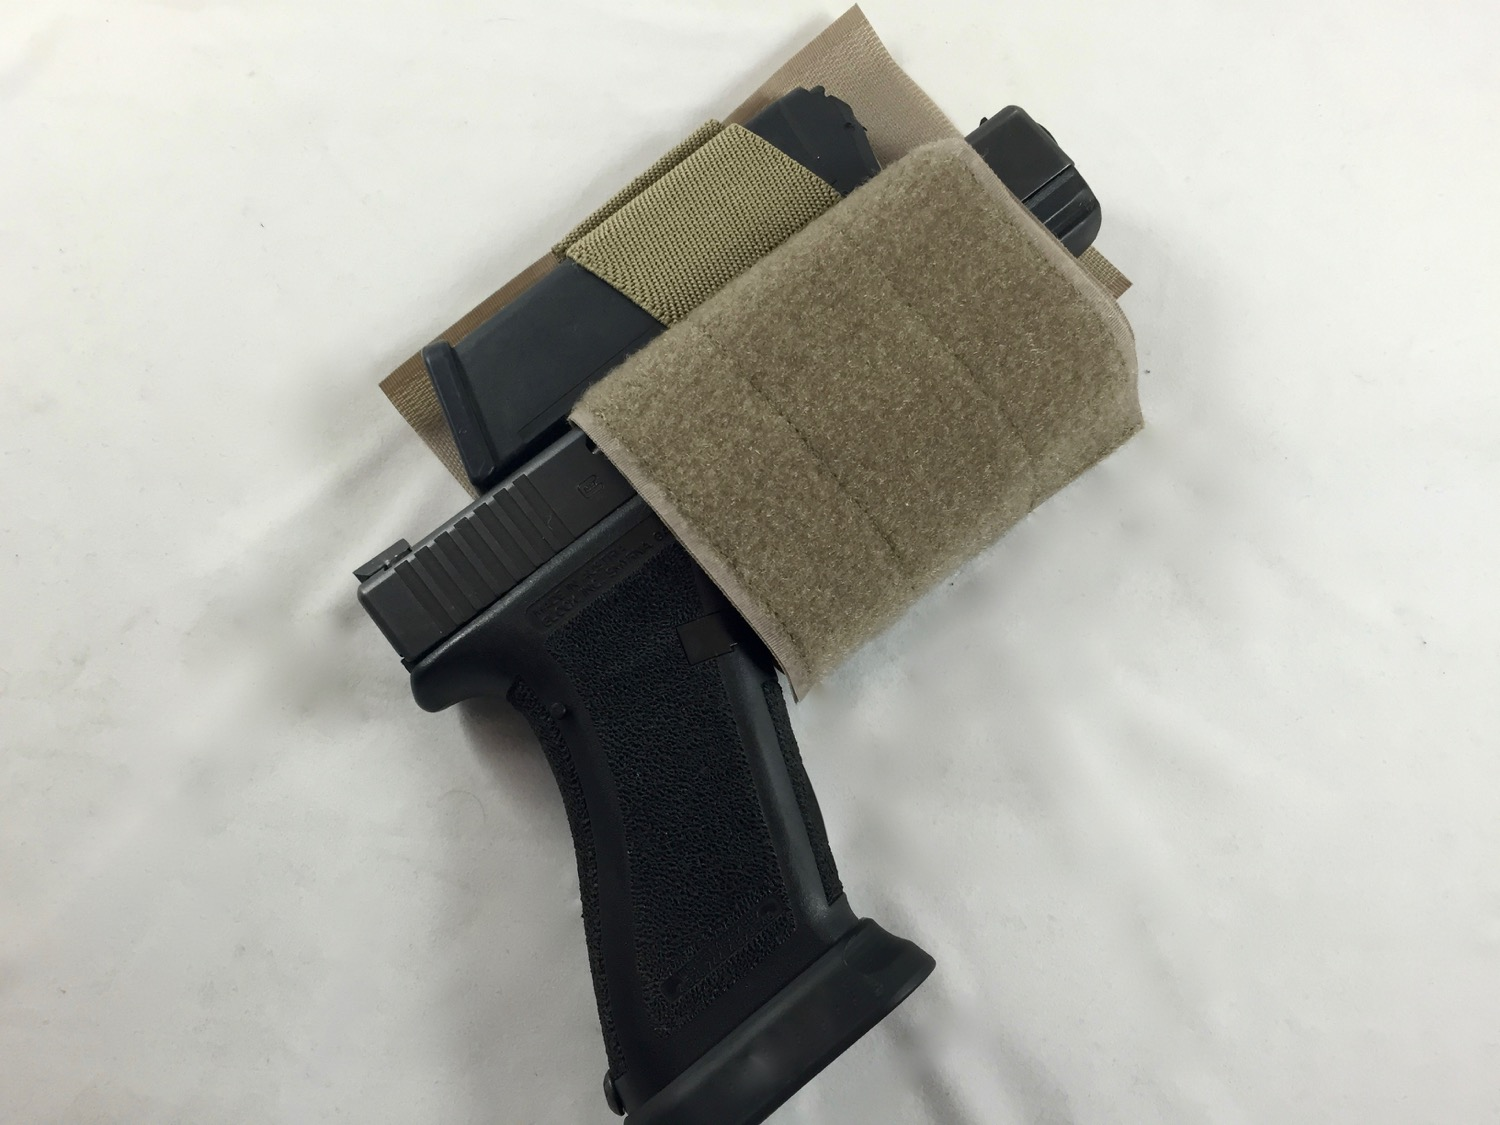 Simple hook and loop based holster for a sidearm and a magazine.